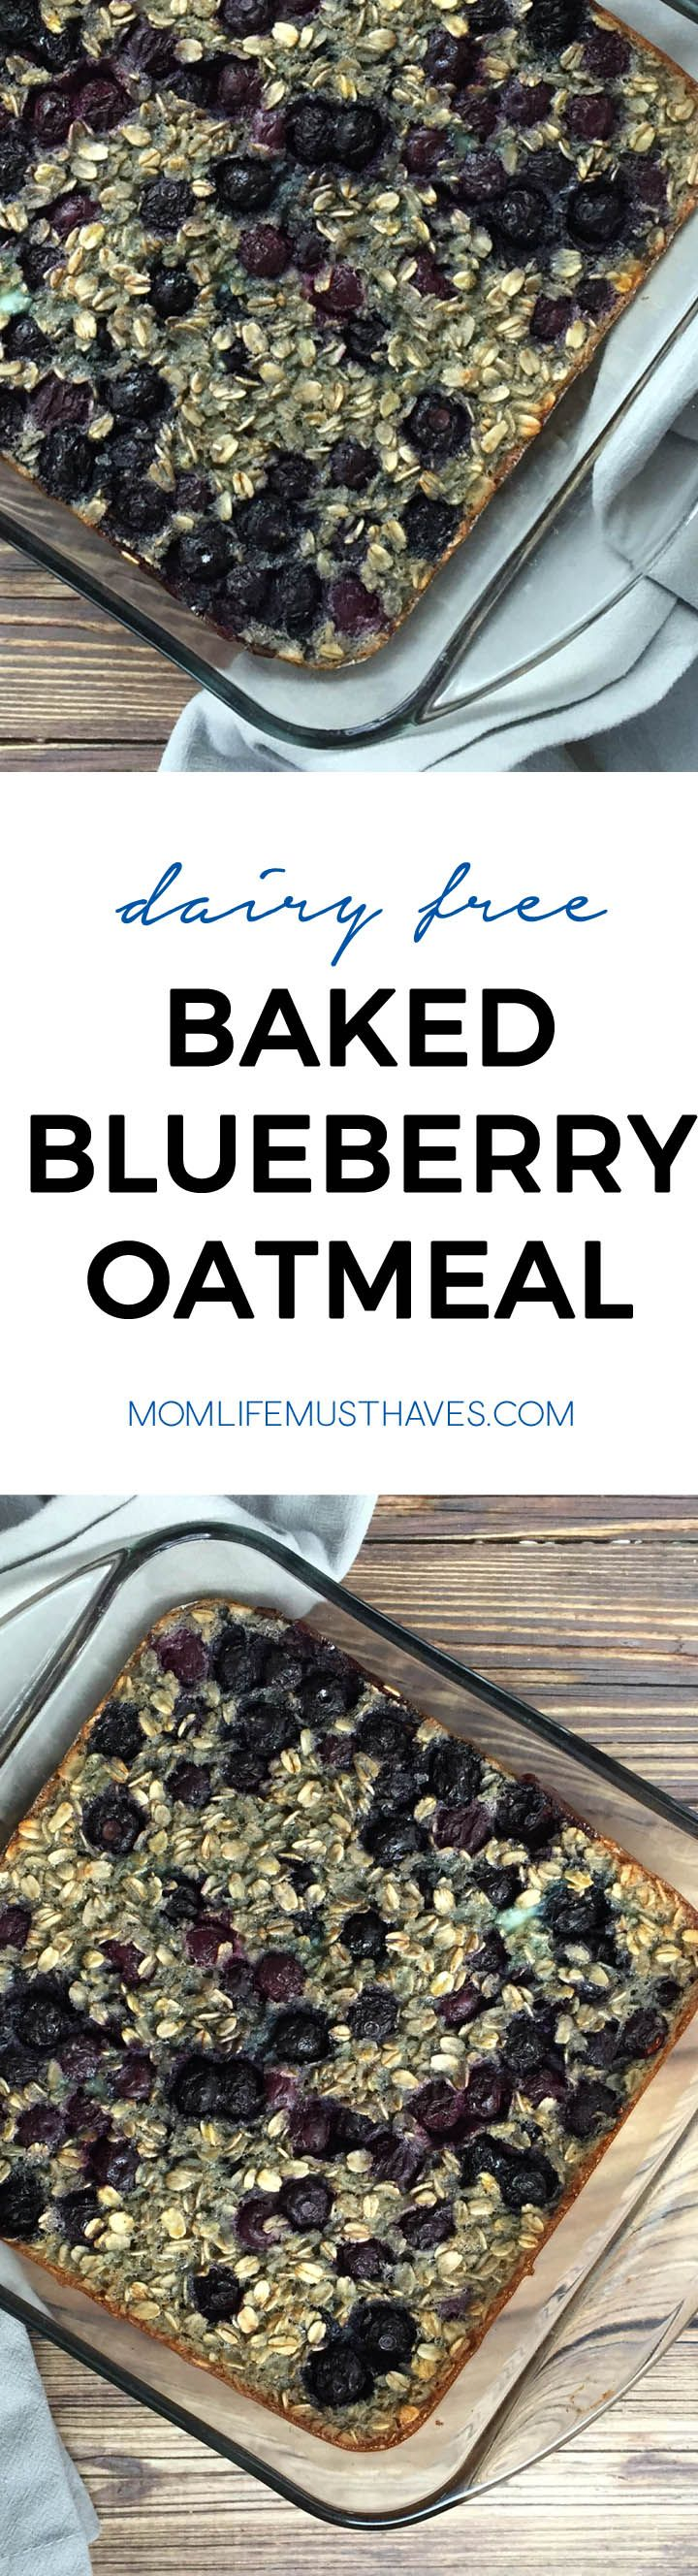 Dairy free blueberry baked oatmeal, an easy grab and go breakfast for moms and kids // momlifemusthaves.com